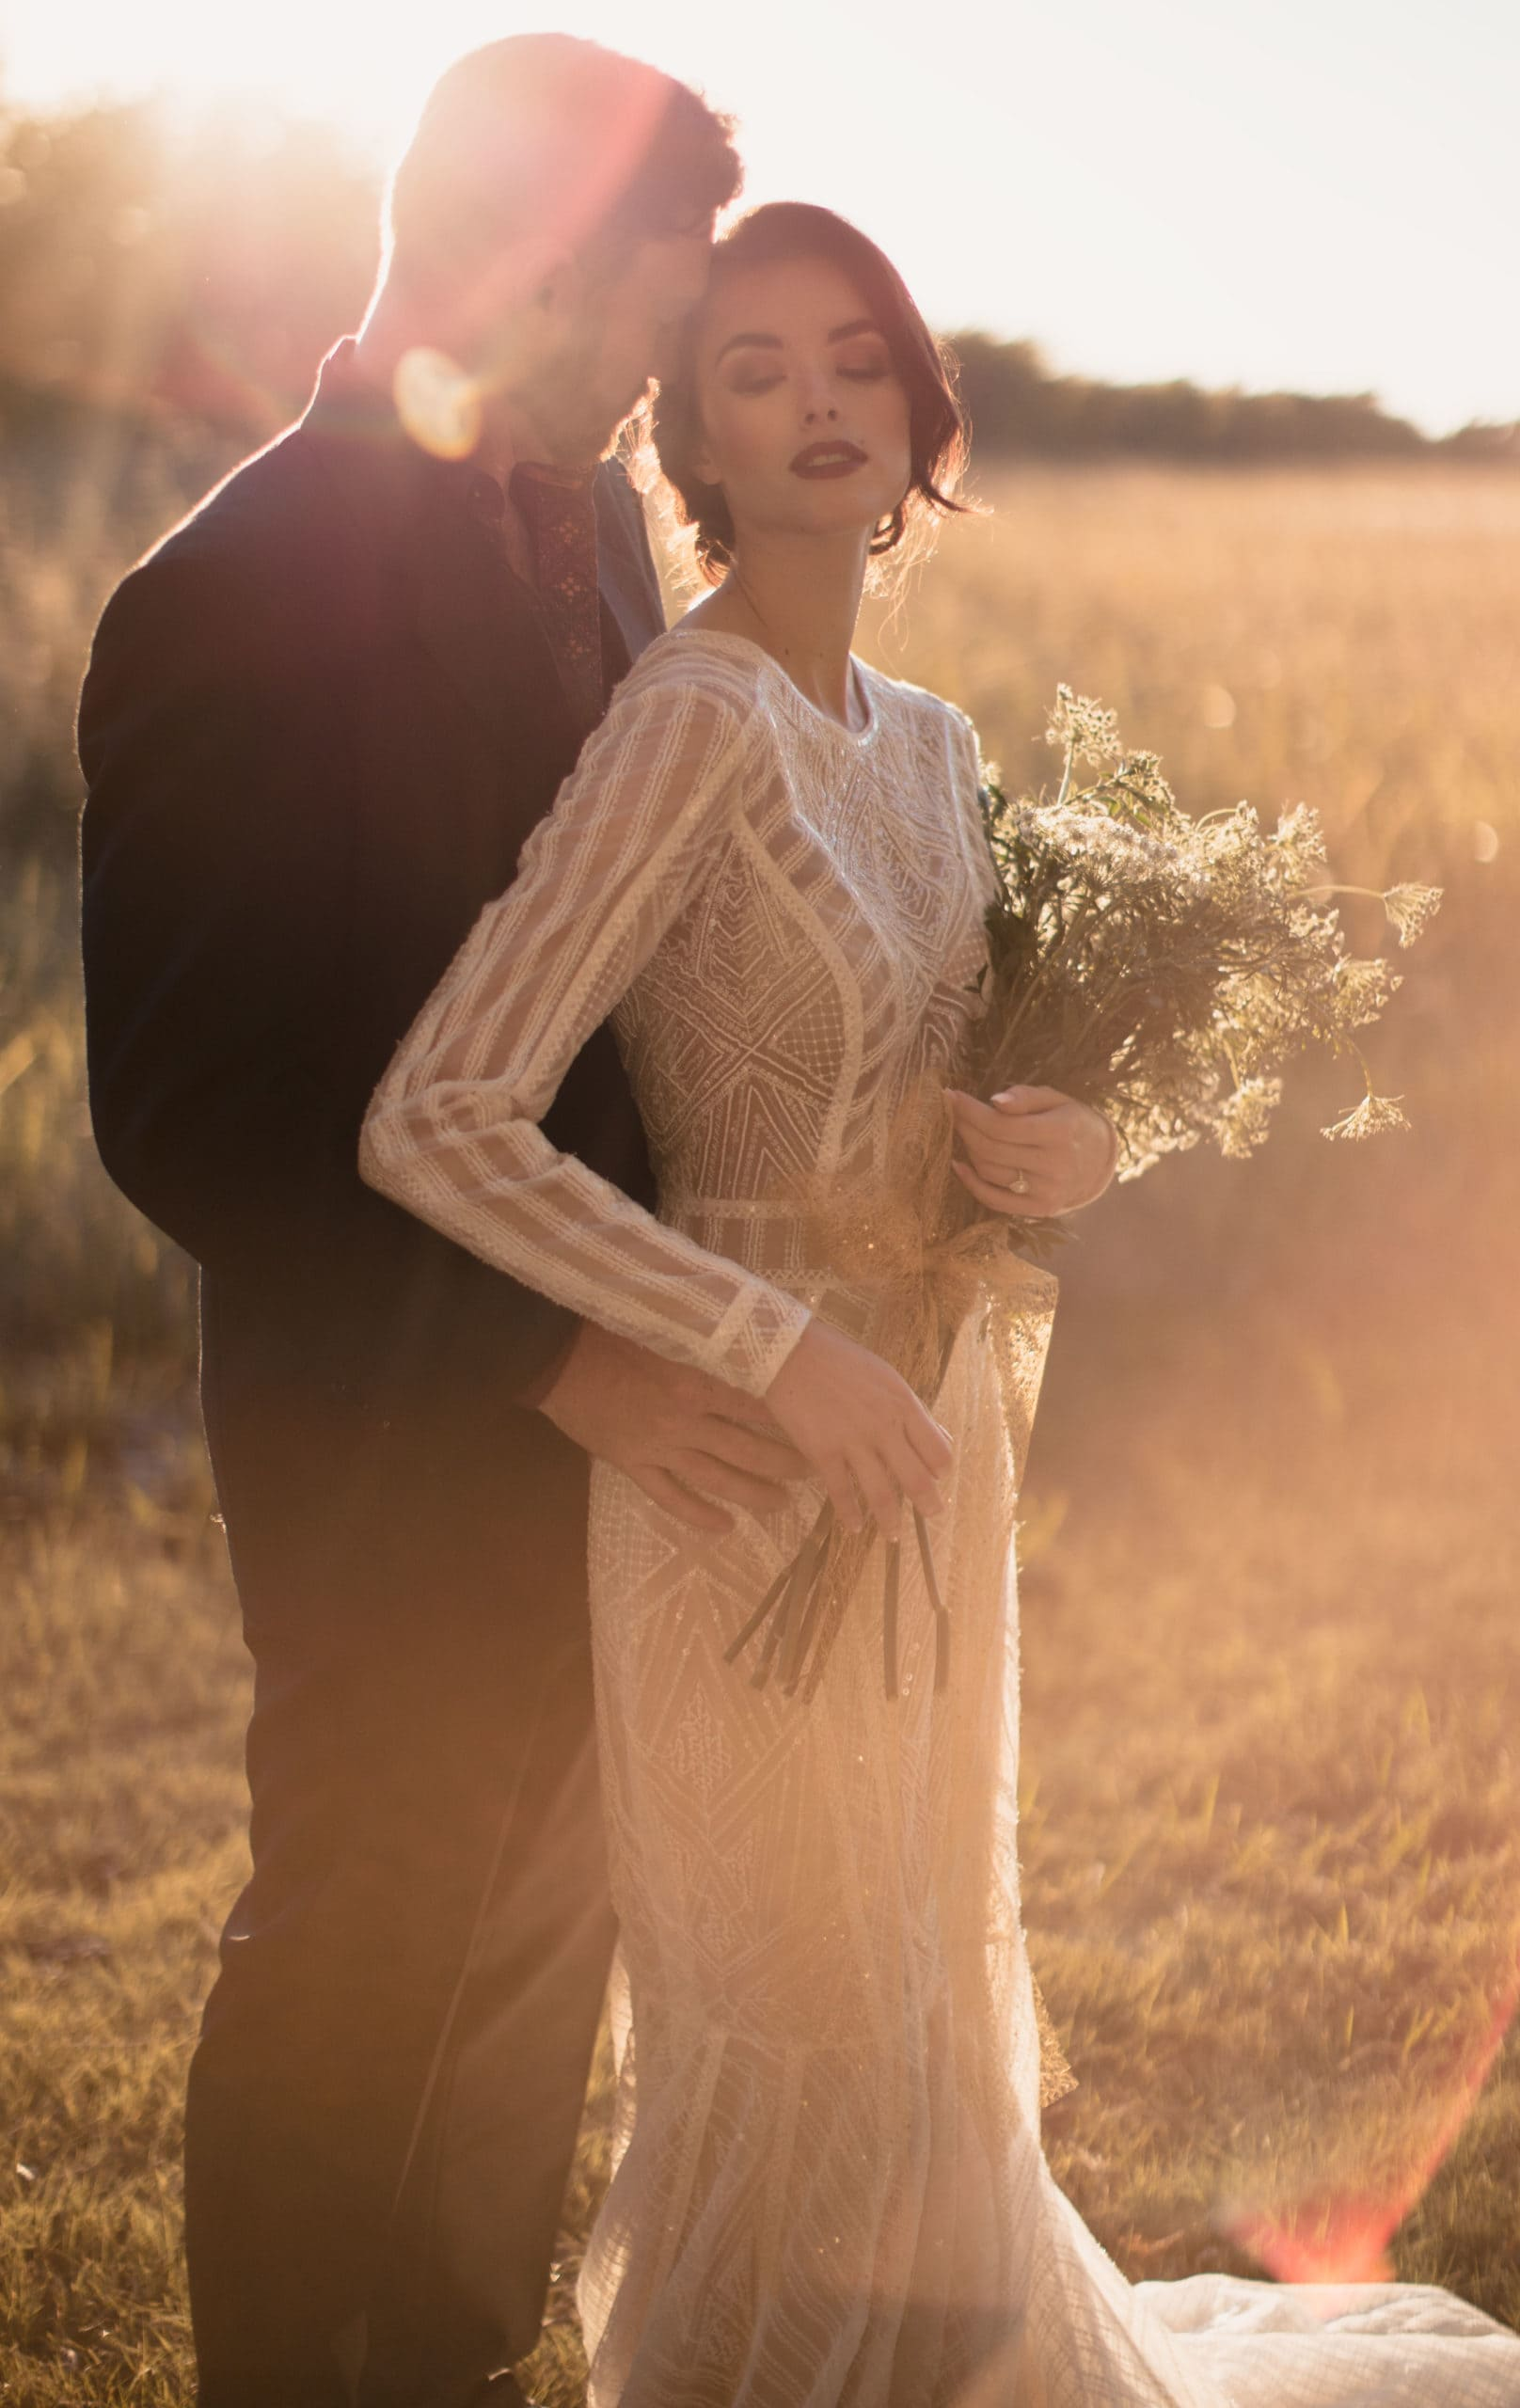 The best elopement photographers know how to pose.